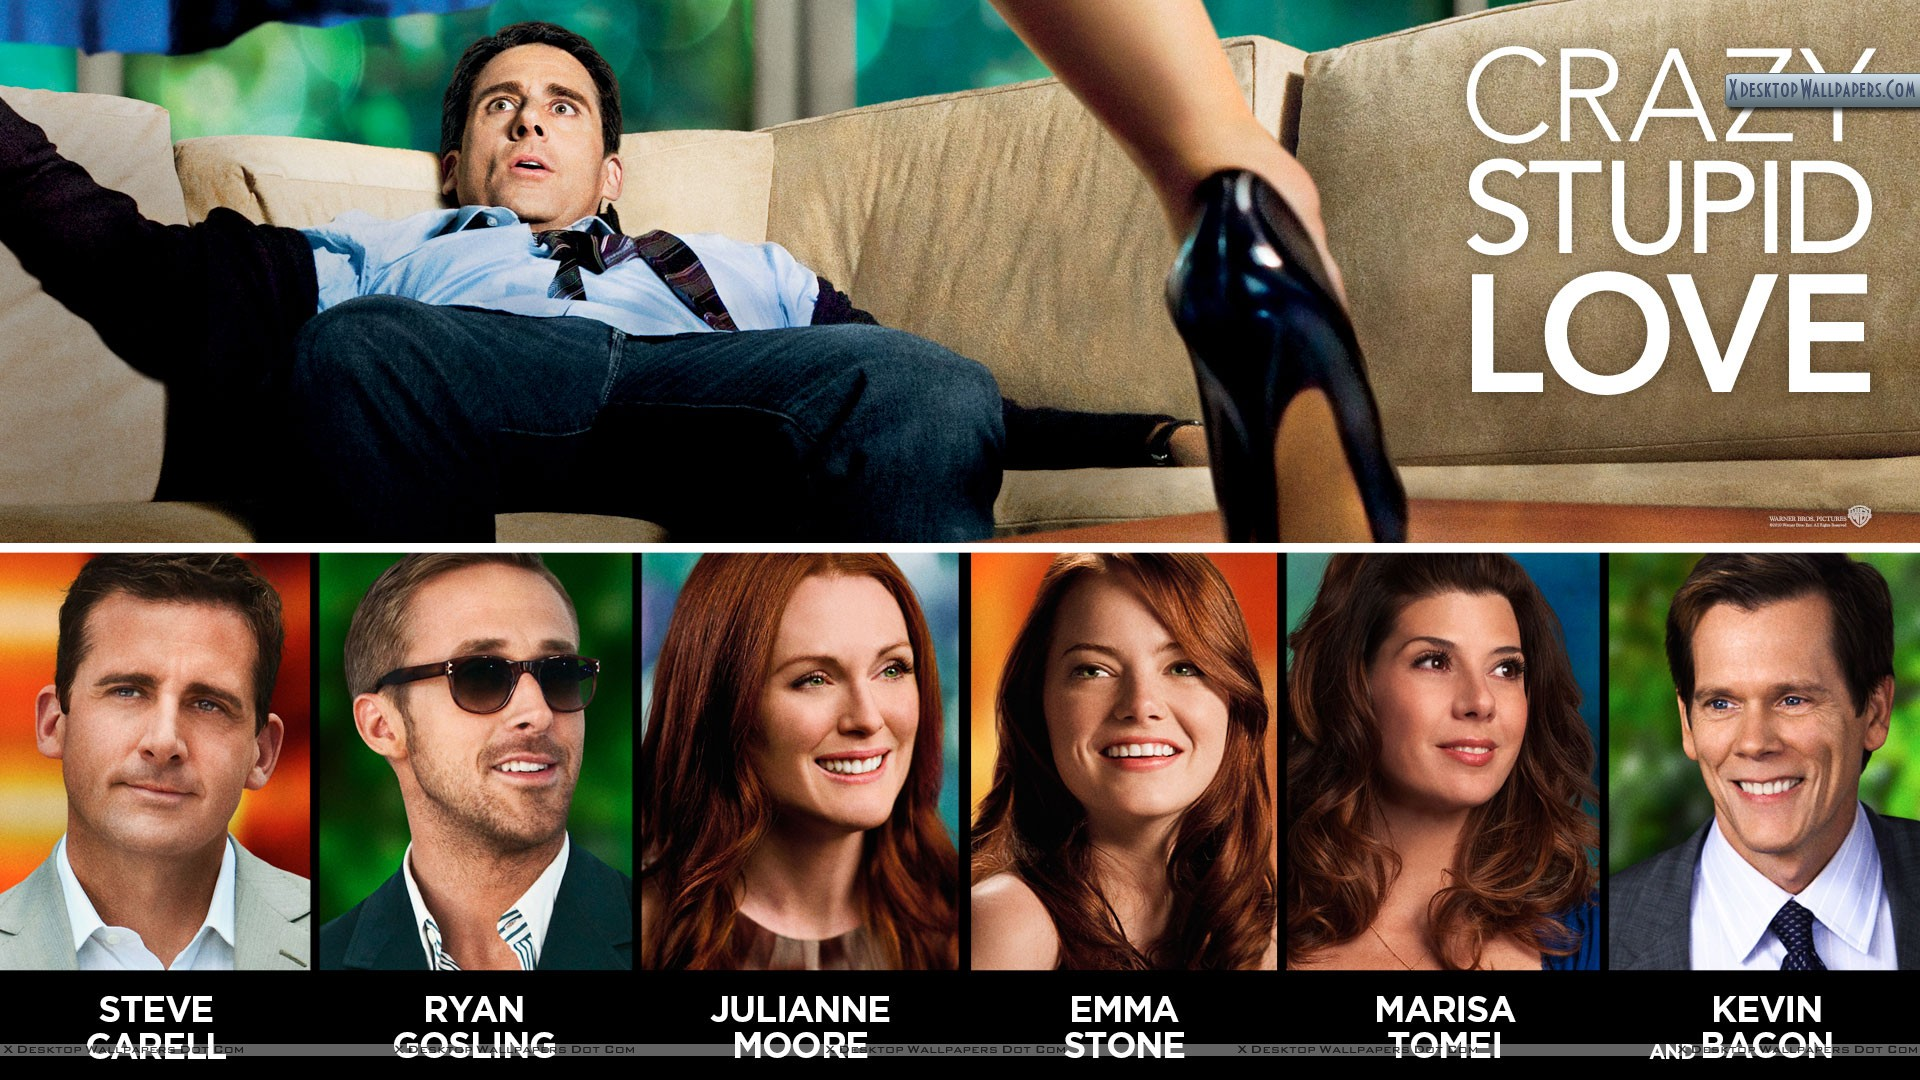 Also Gosling...as well as awesome cast. And, makes me laugh soooo hard.